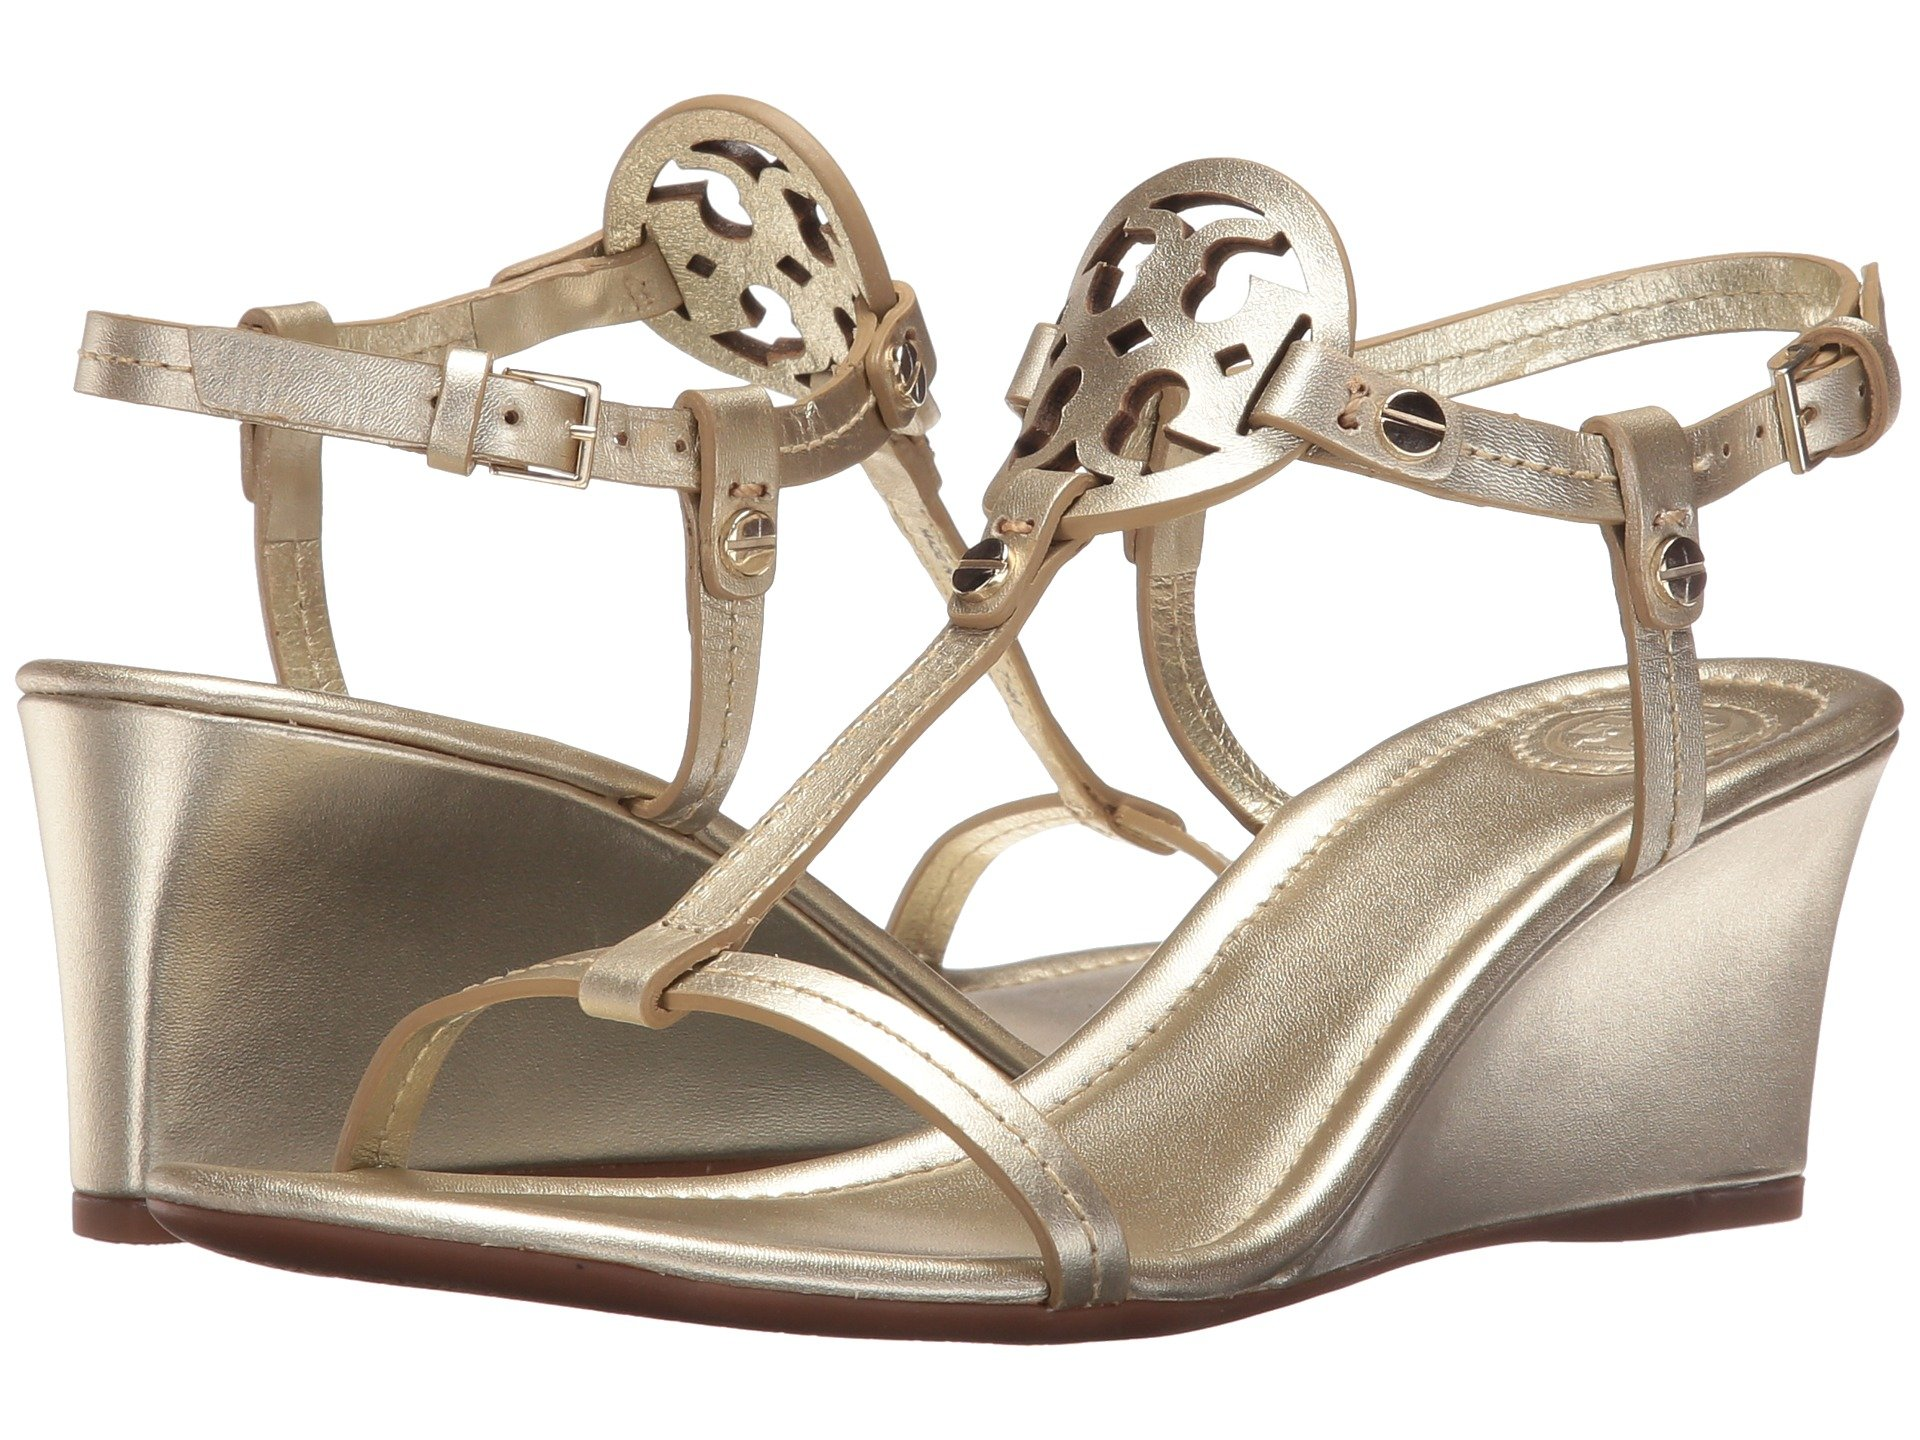 0efb2e08c8 Zappos: Tory Burch Wedge Sandals – 48% Off + Free Shipping! – Wear ...